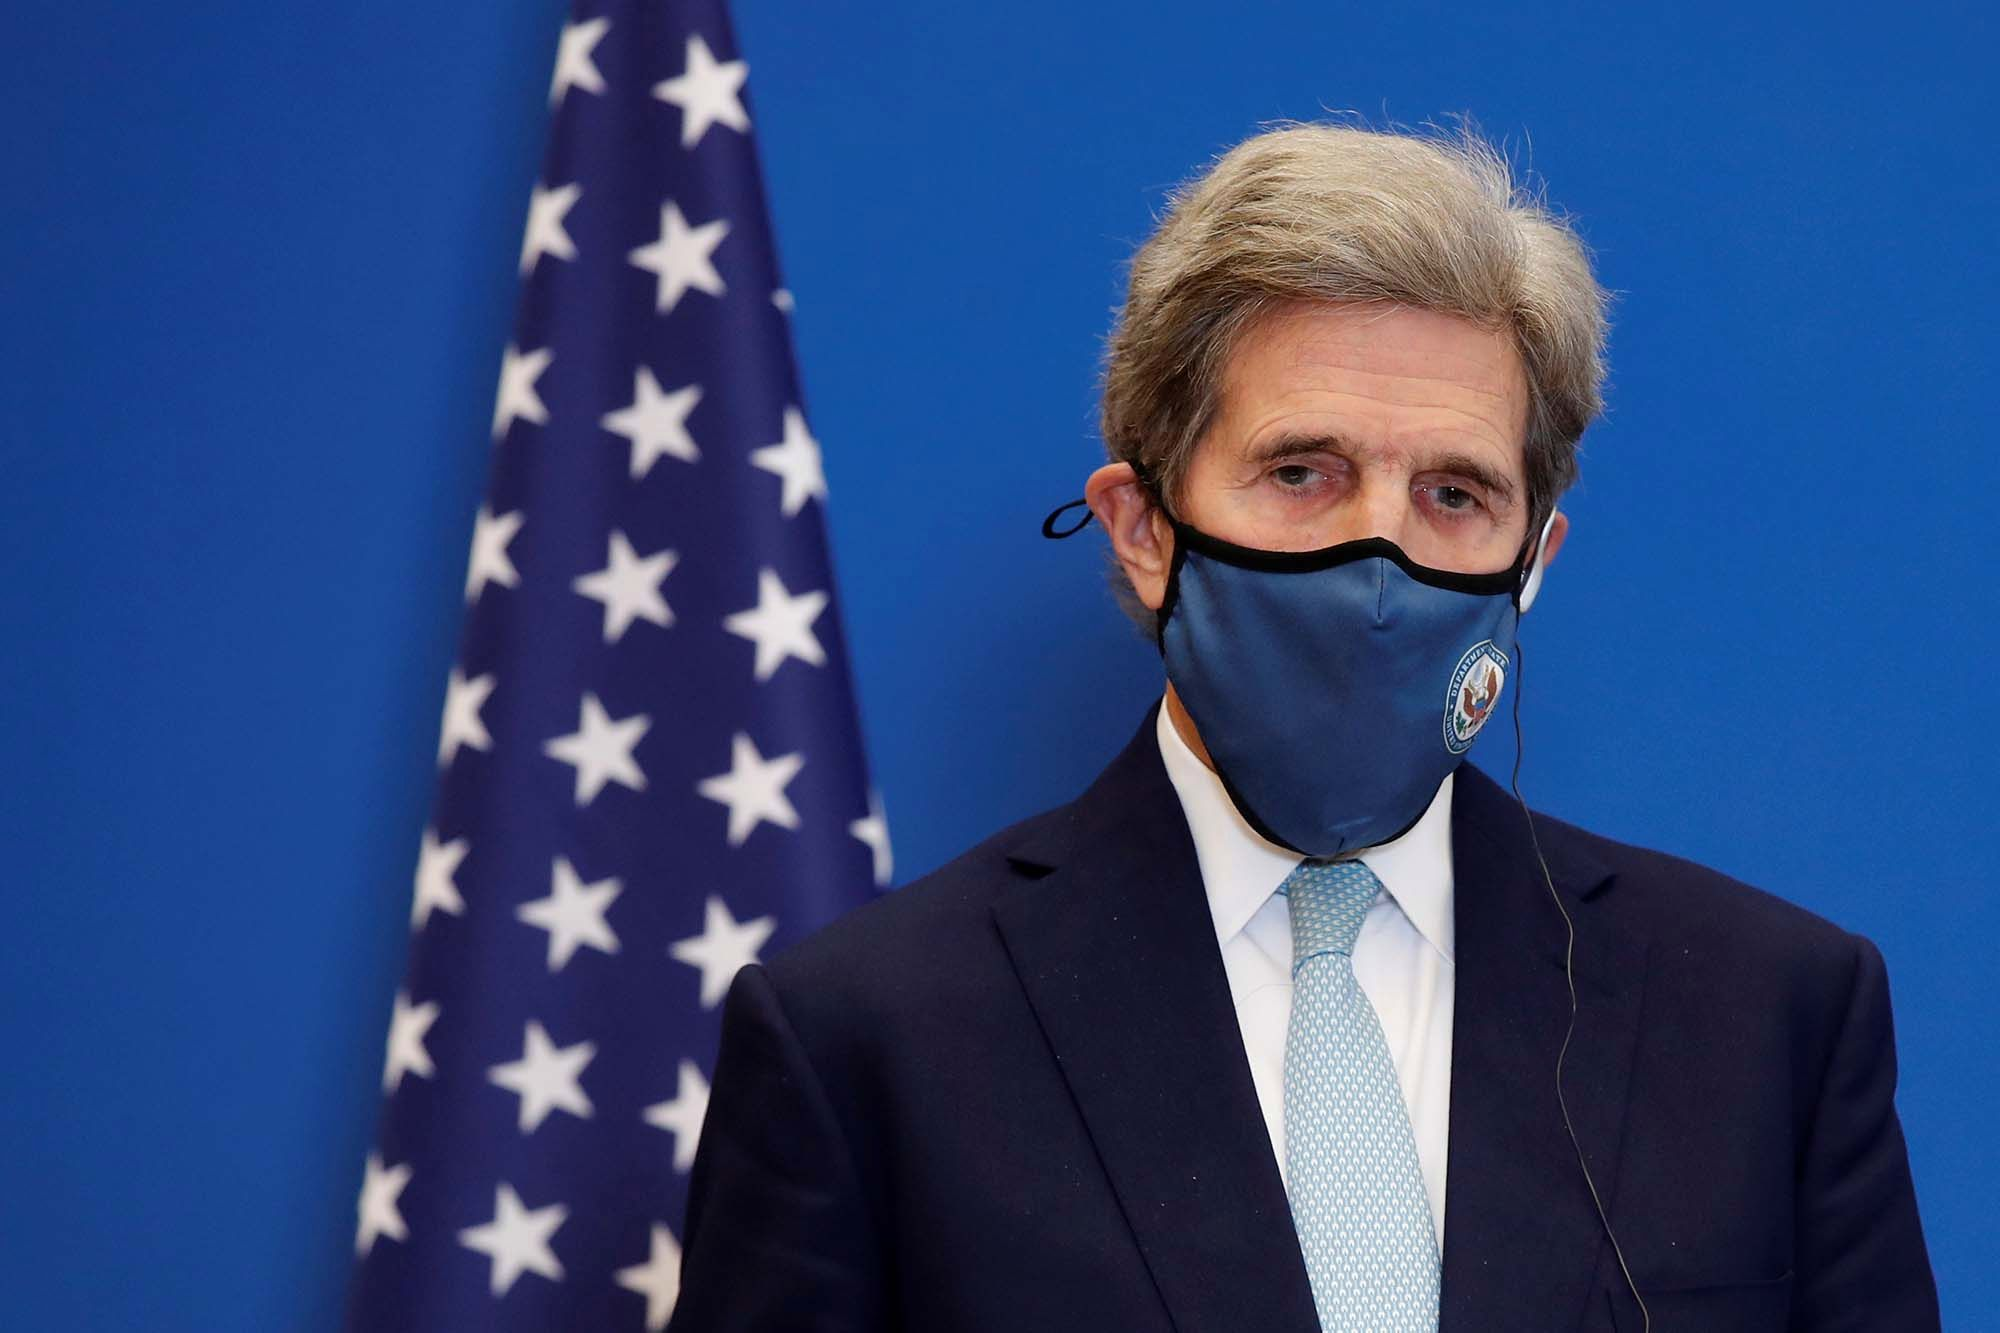 John Kerry 'hopeful' China will help on climate change